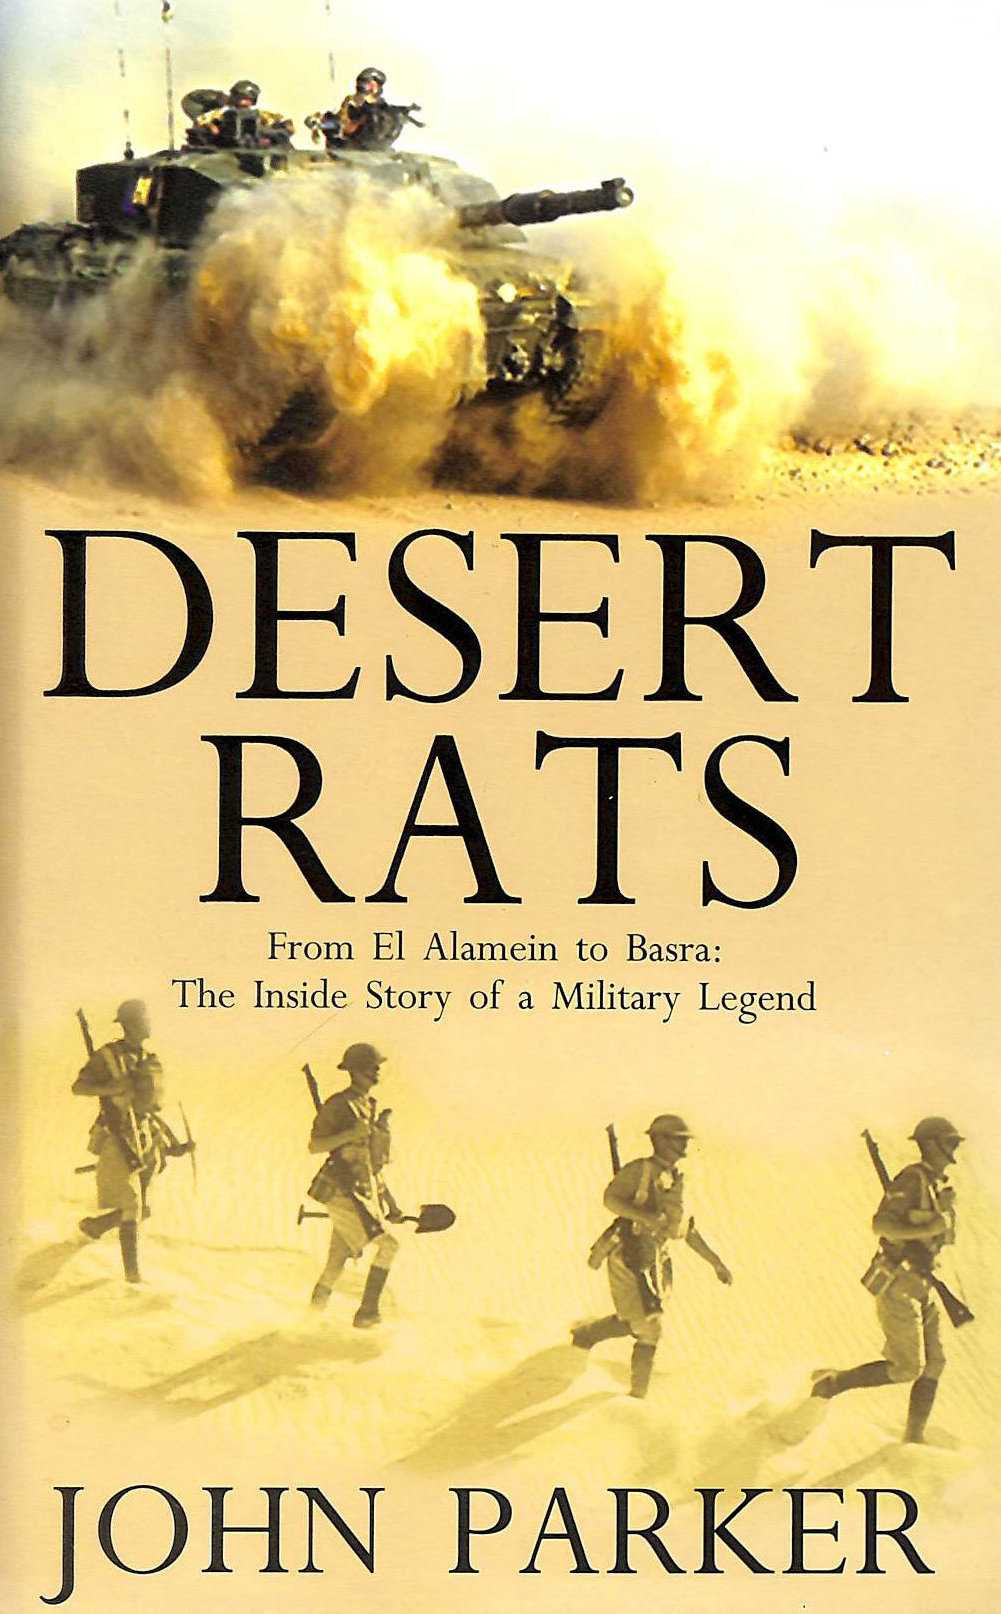 Image for Desert Rats From El Alamein To Basra: The Inside Story Of A Military Legend